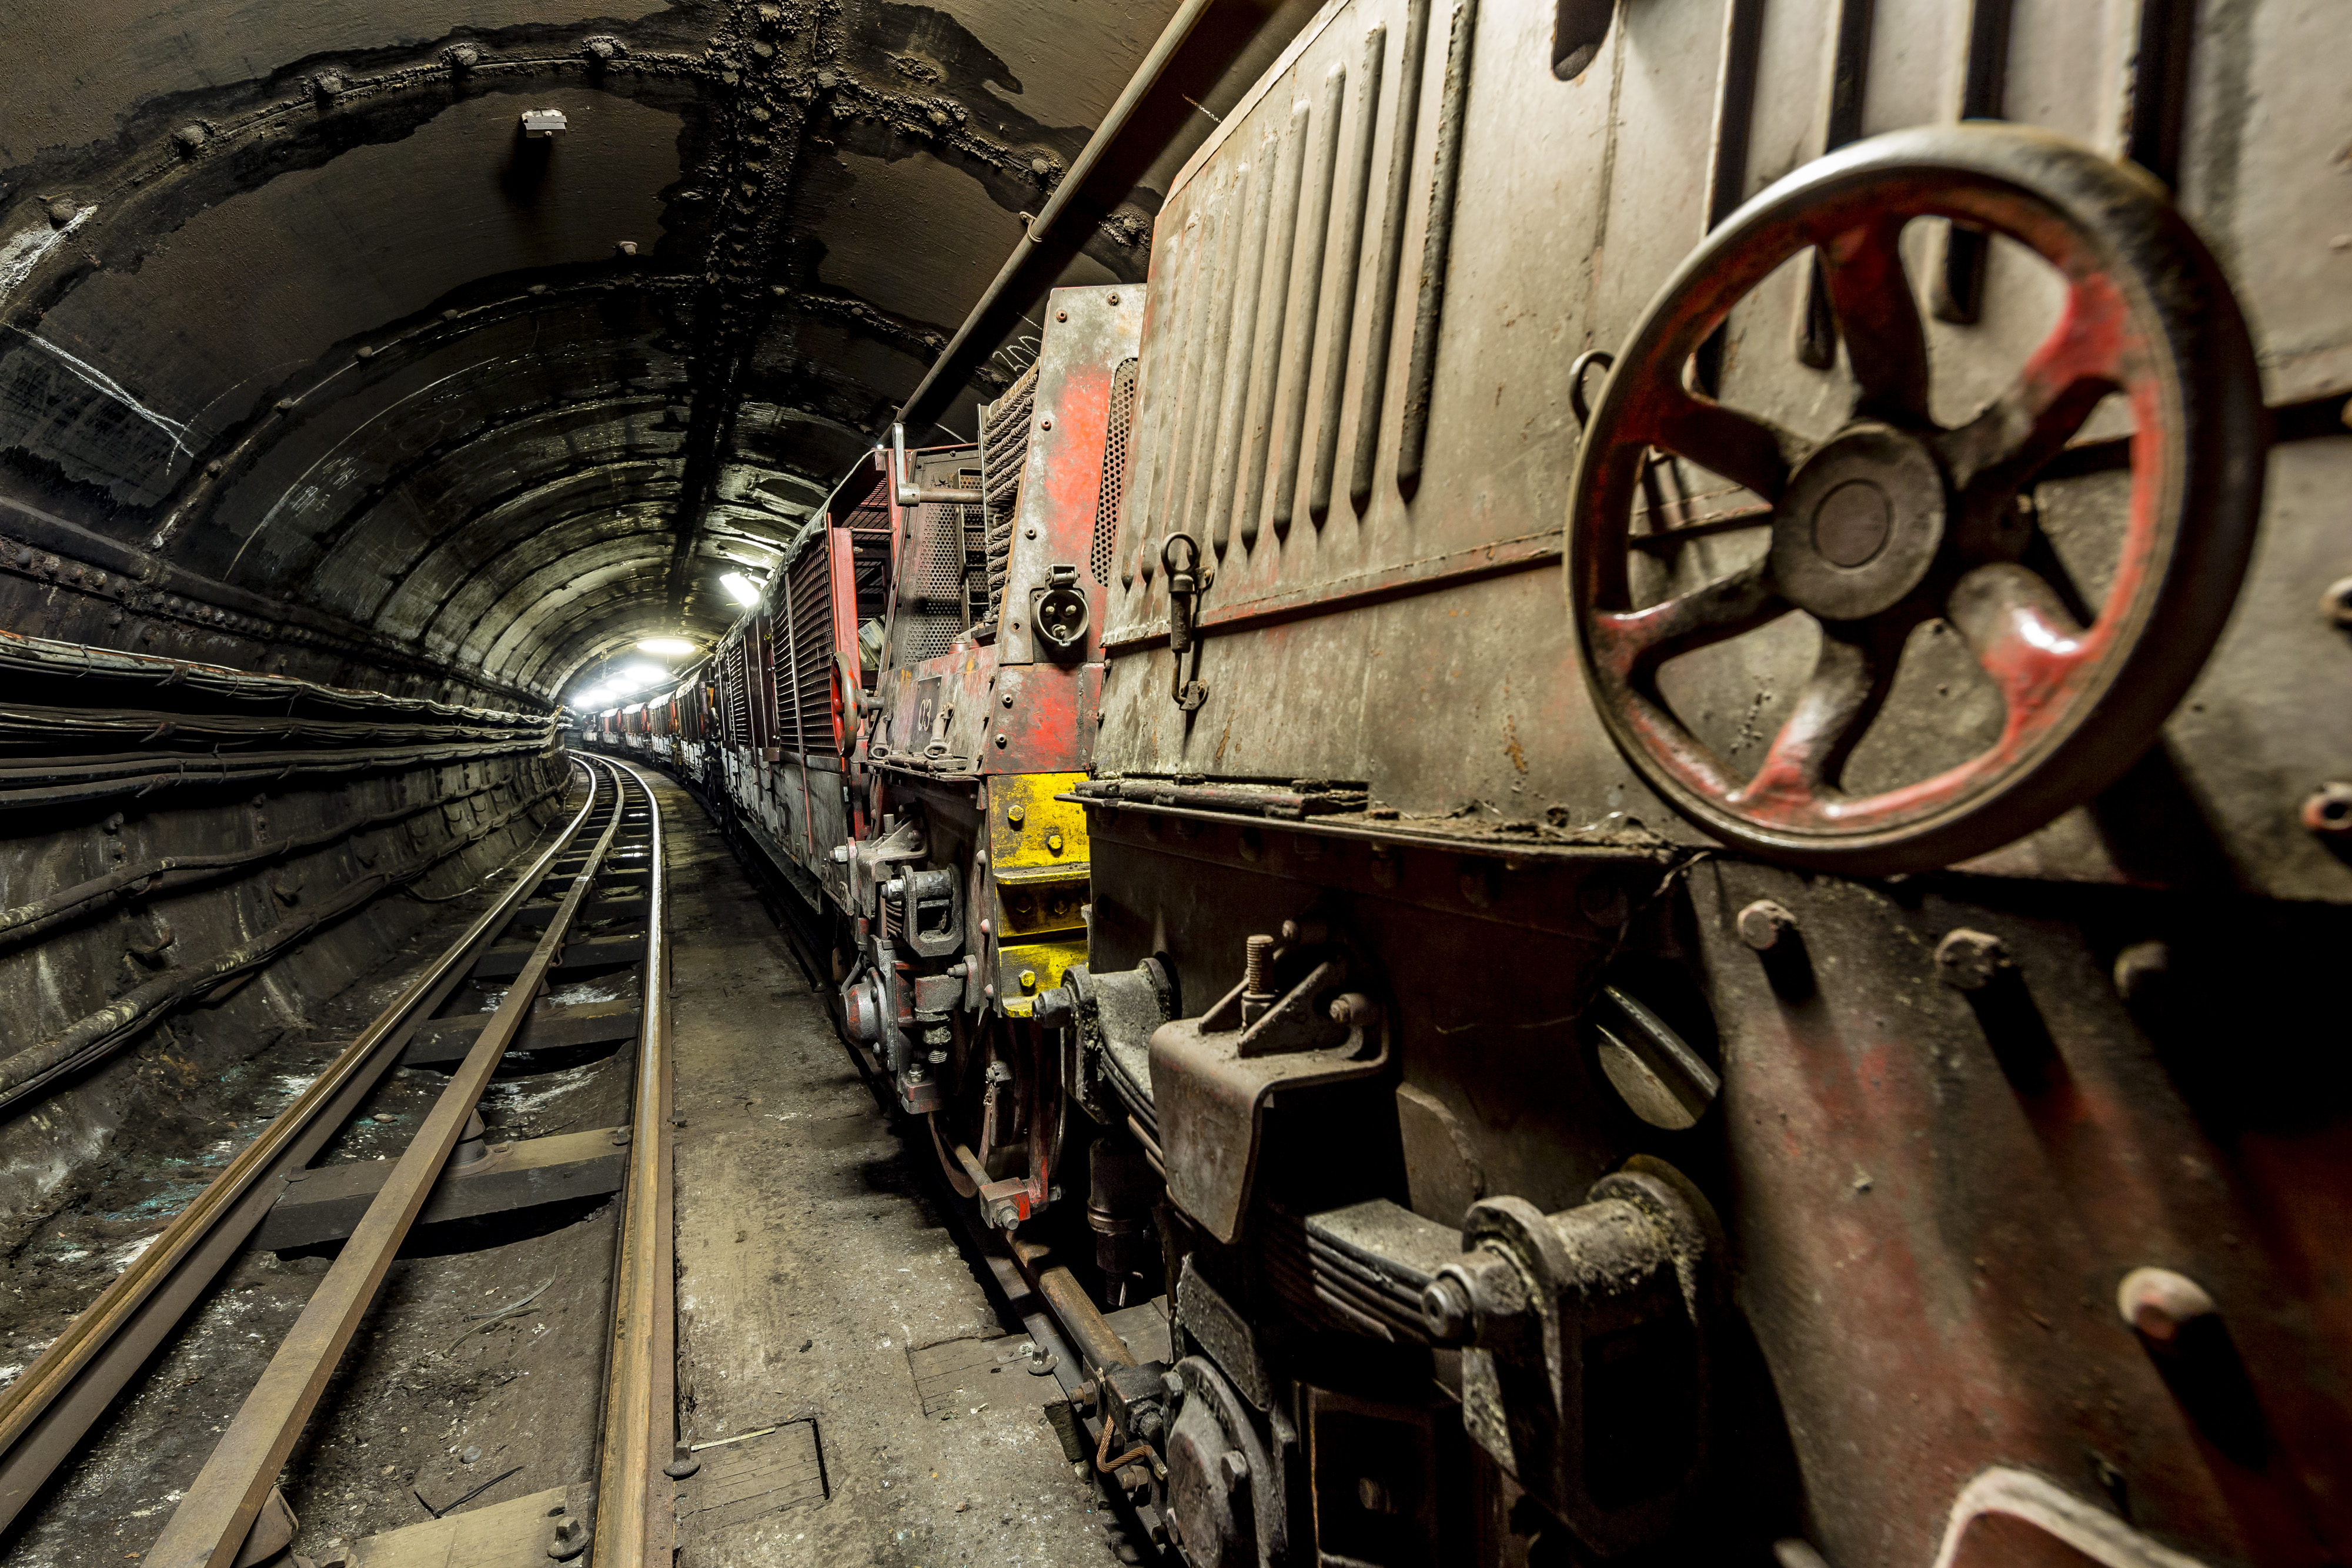 The train tunnels of The Postal Museum Mail Rail ride